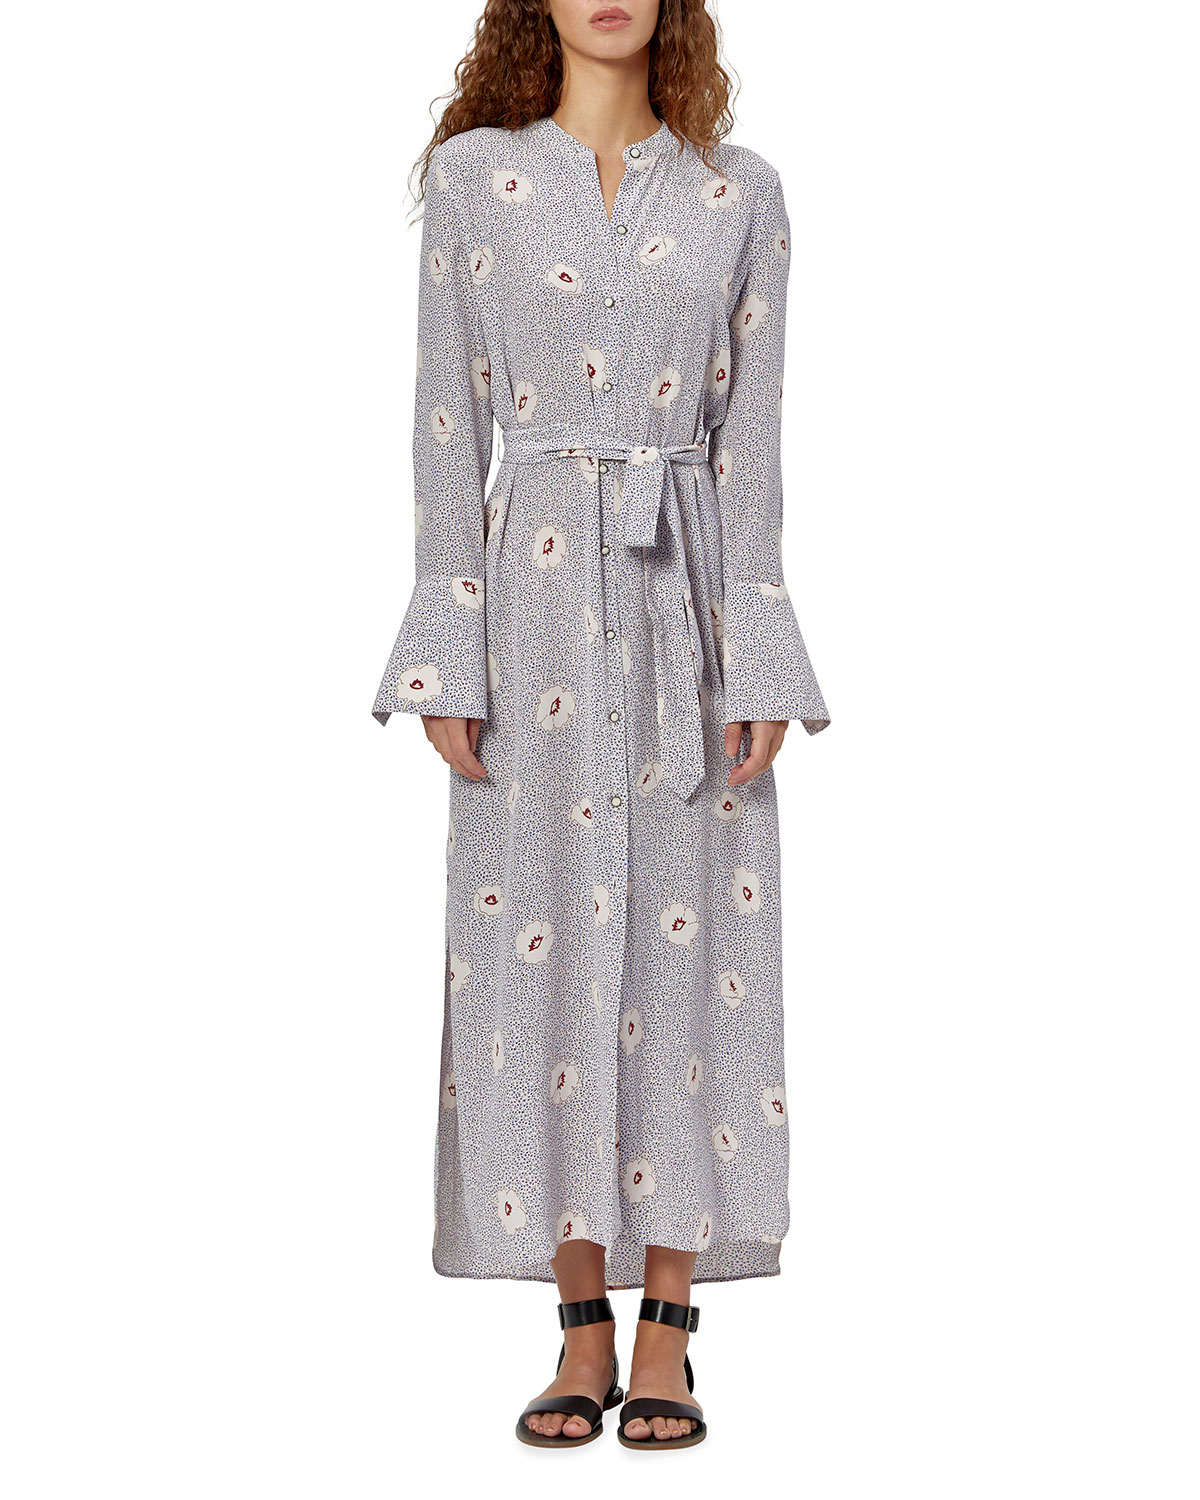 Equipment Connell Floral Maxi Shirtdress In Shll Mlt